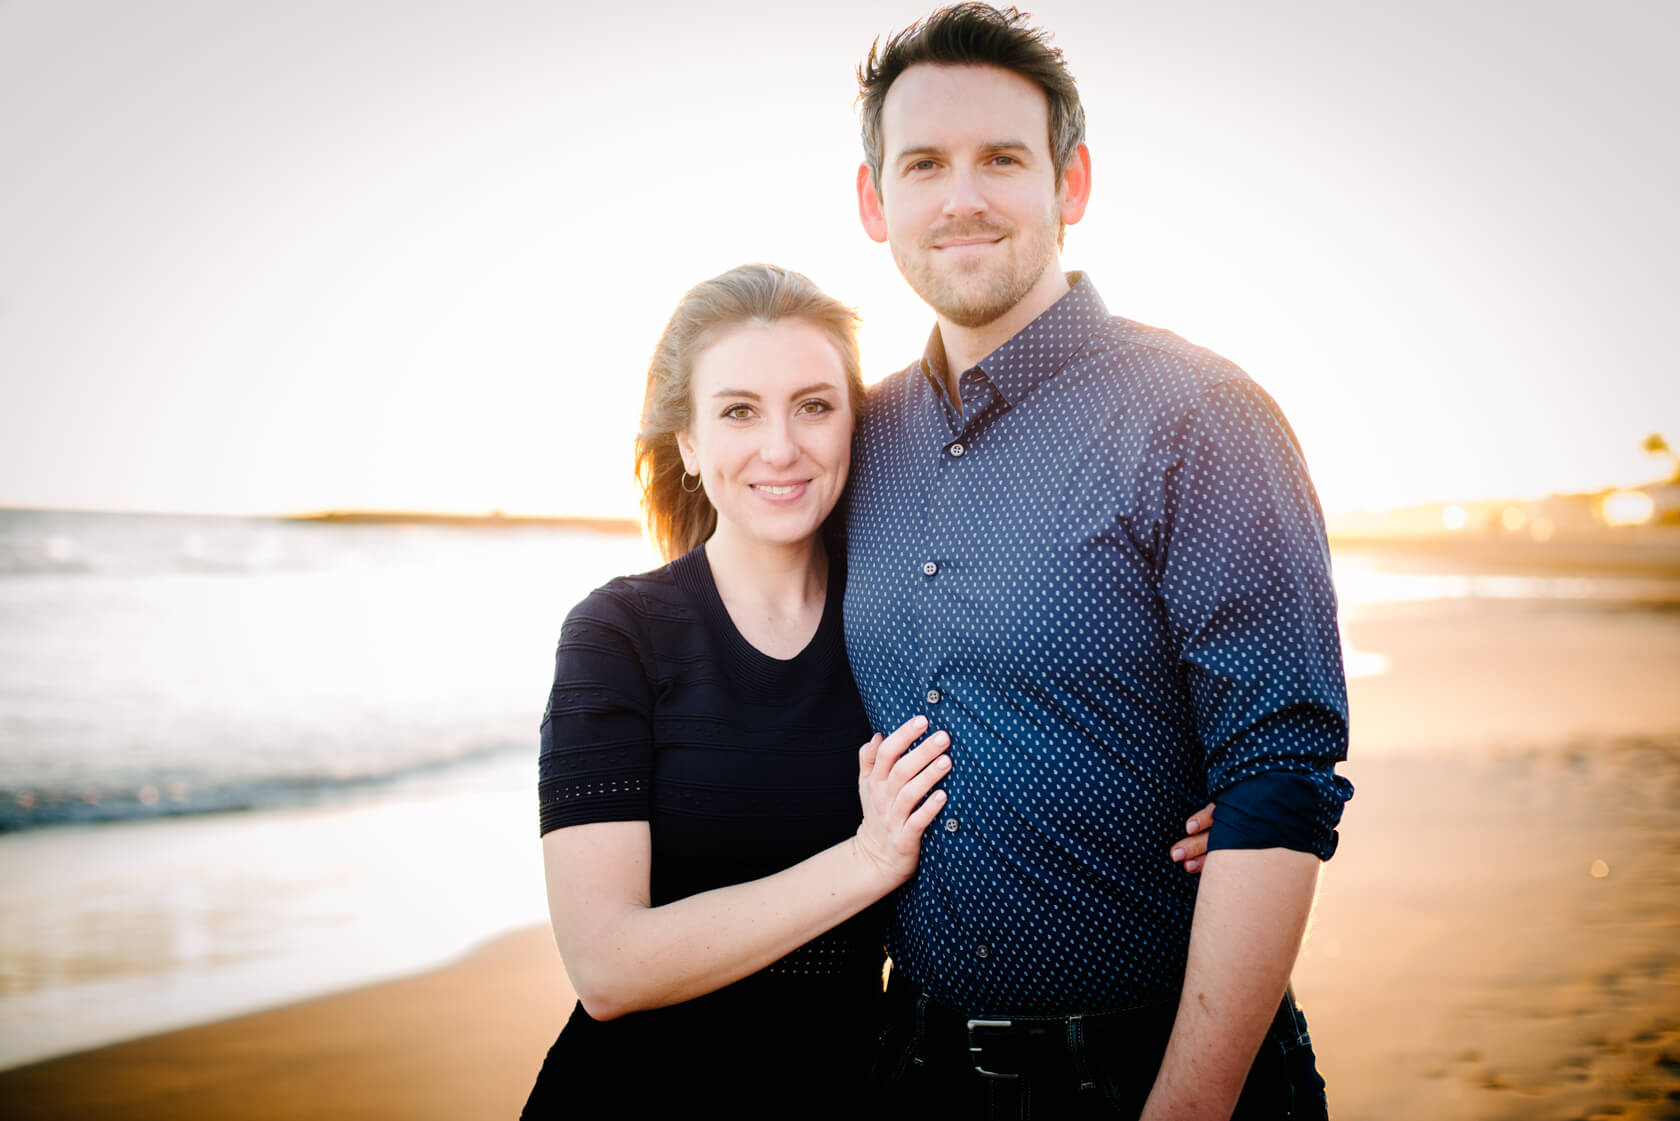 engagement photo-shoot in Sitges